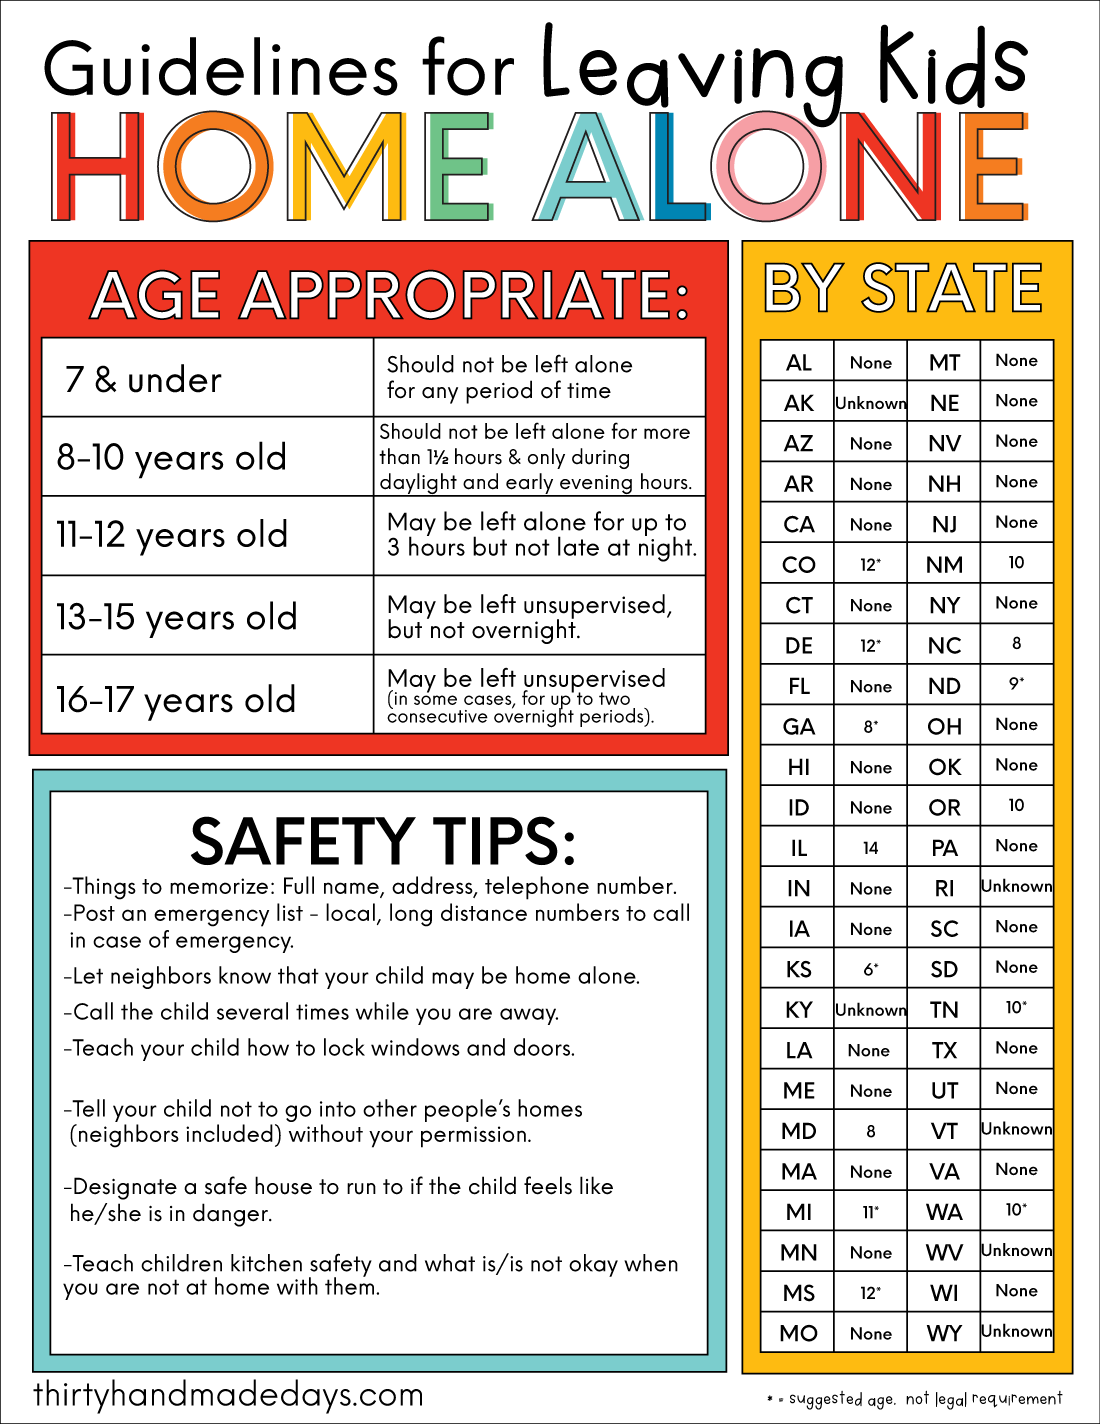 Guidelines for Leaving Kids Home Alone